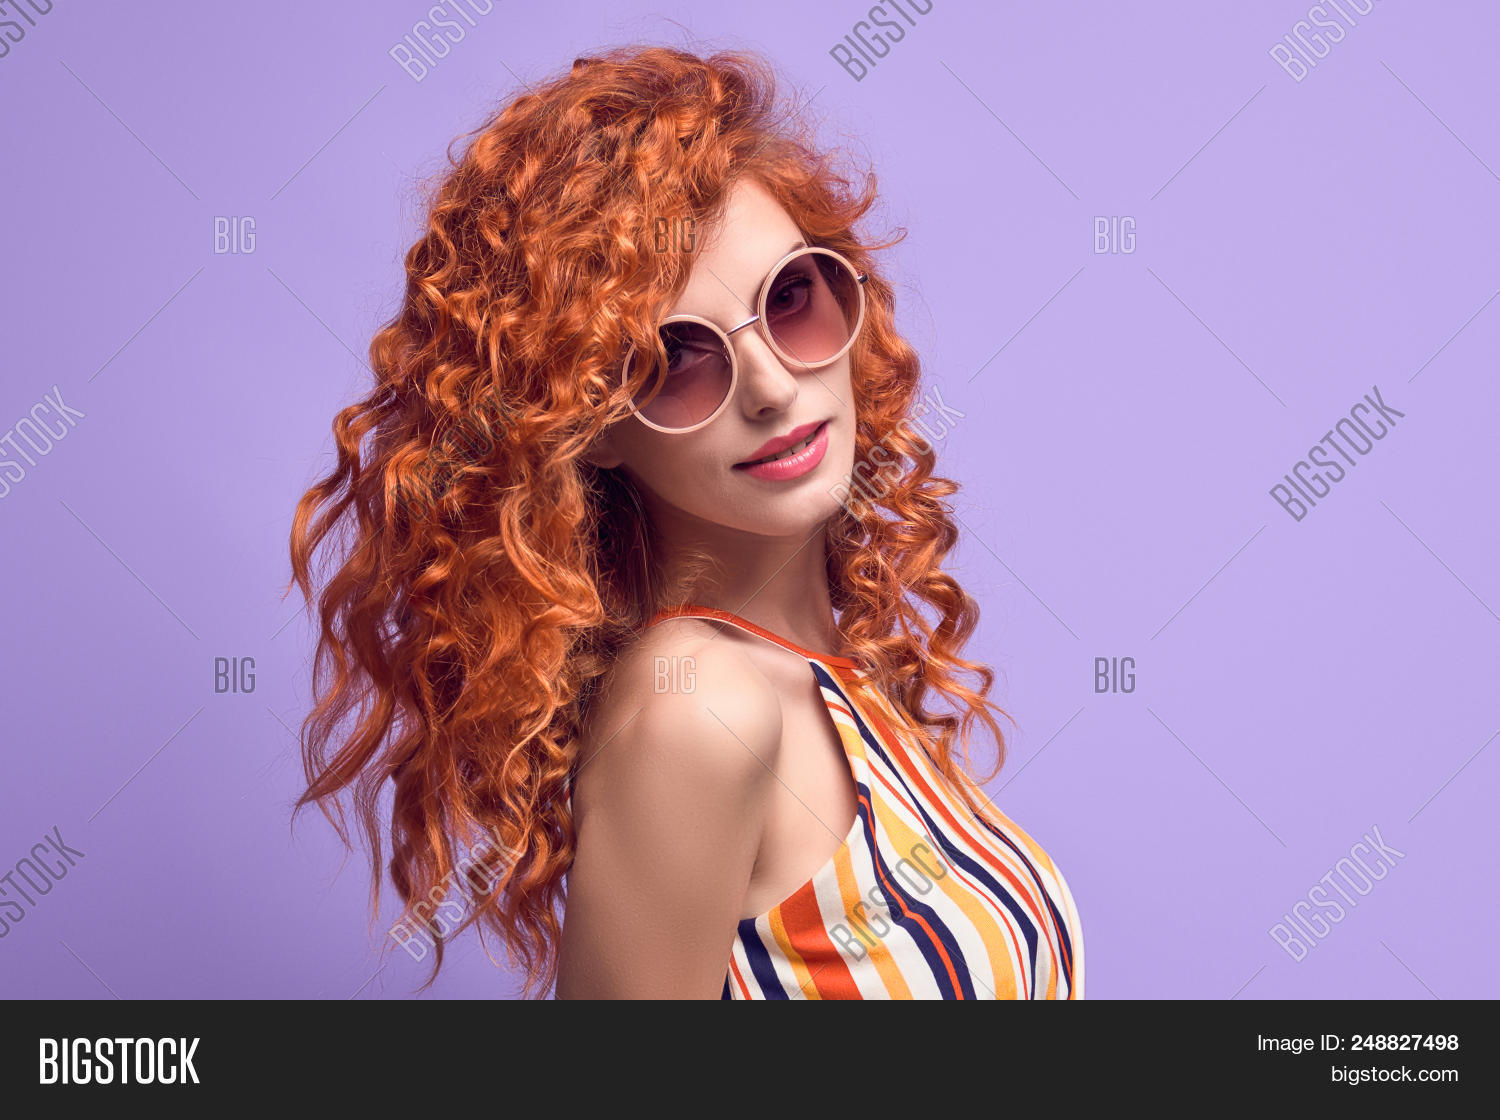 d648658ae63e Portrait Young Redhead Girl Smiling in Studio on Purple. Beautiful woman in  Stylish Summer Outfit